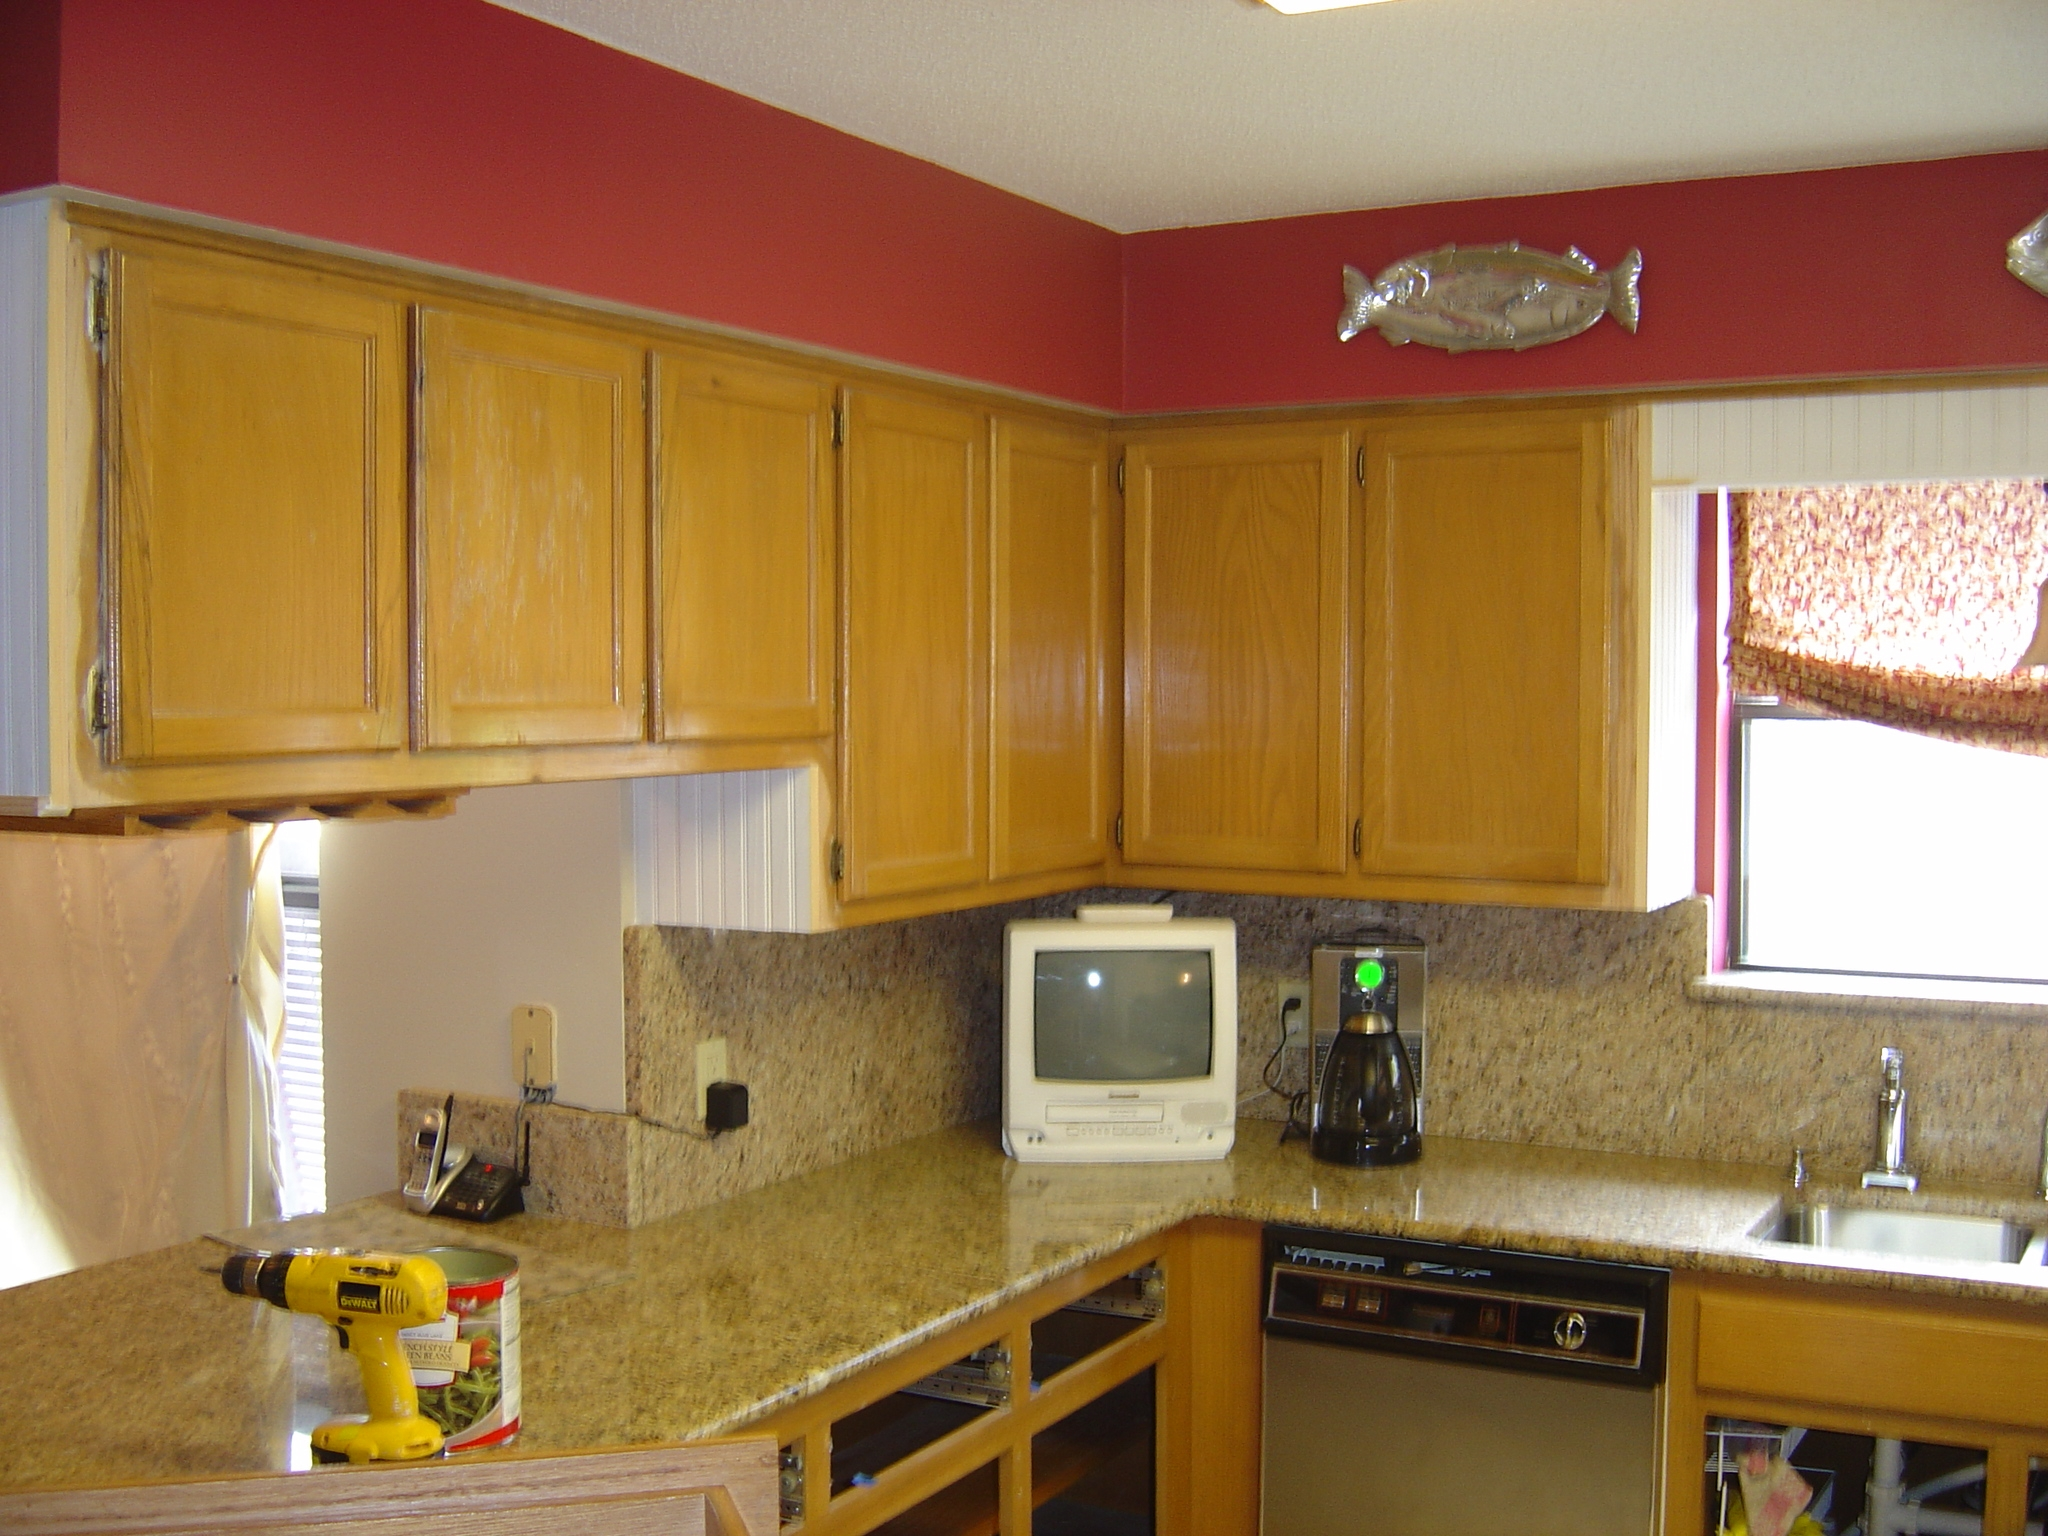 Red Kitchens With Oak Cabinets Red Oak Cabinets Kitchen Red Kitchens With Oak Cabinets